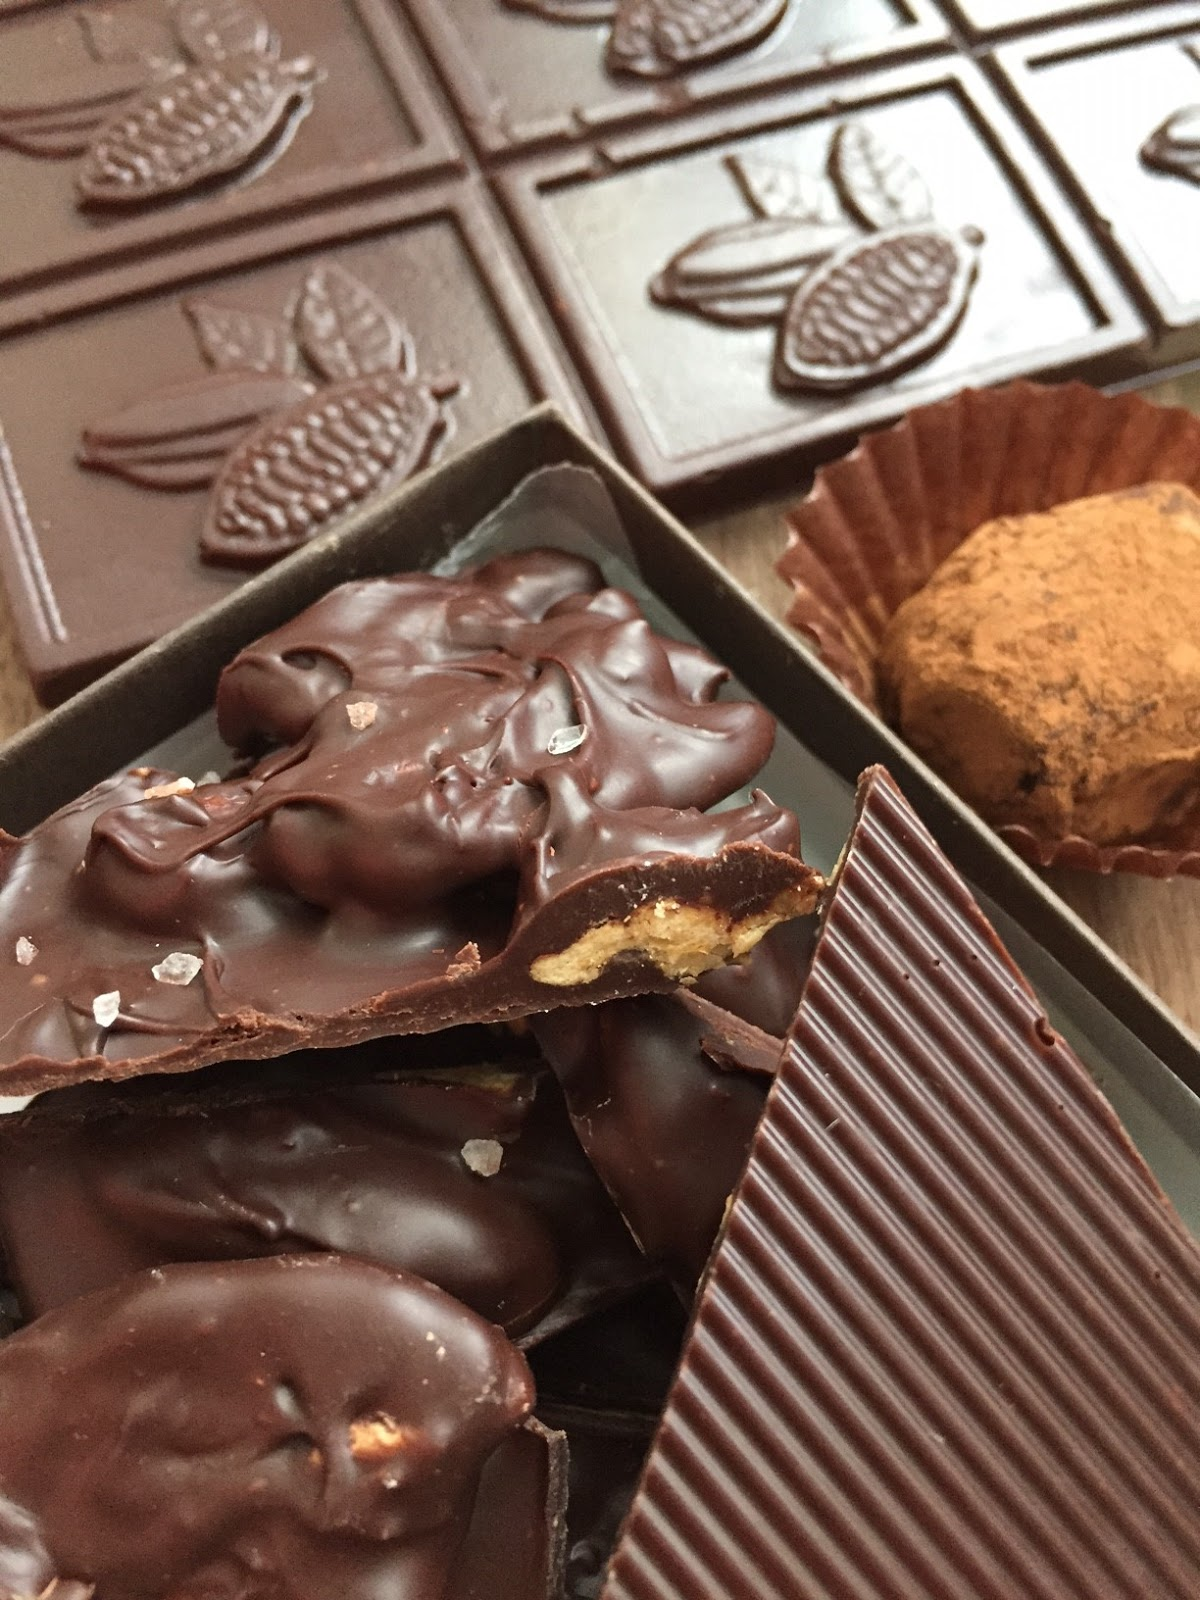 The Ultimate Chocolate Blog: Mesocacao: Bean-to-Bar Chocolate ...